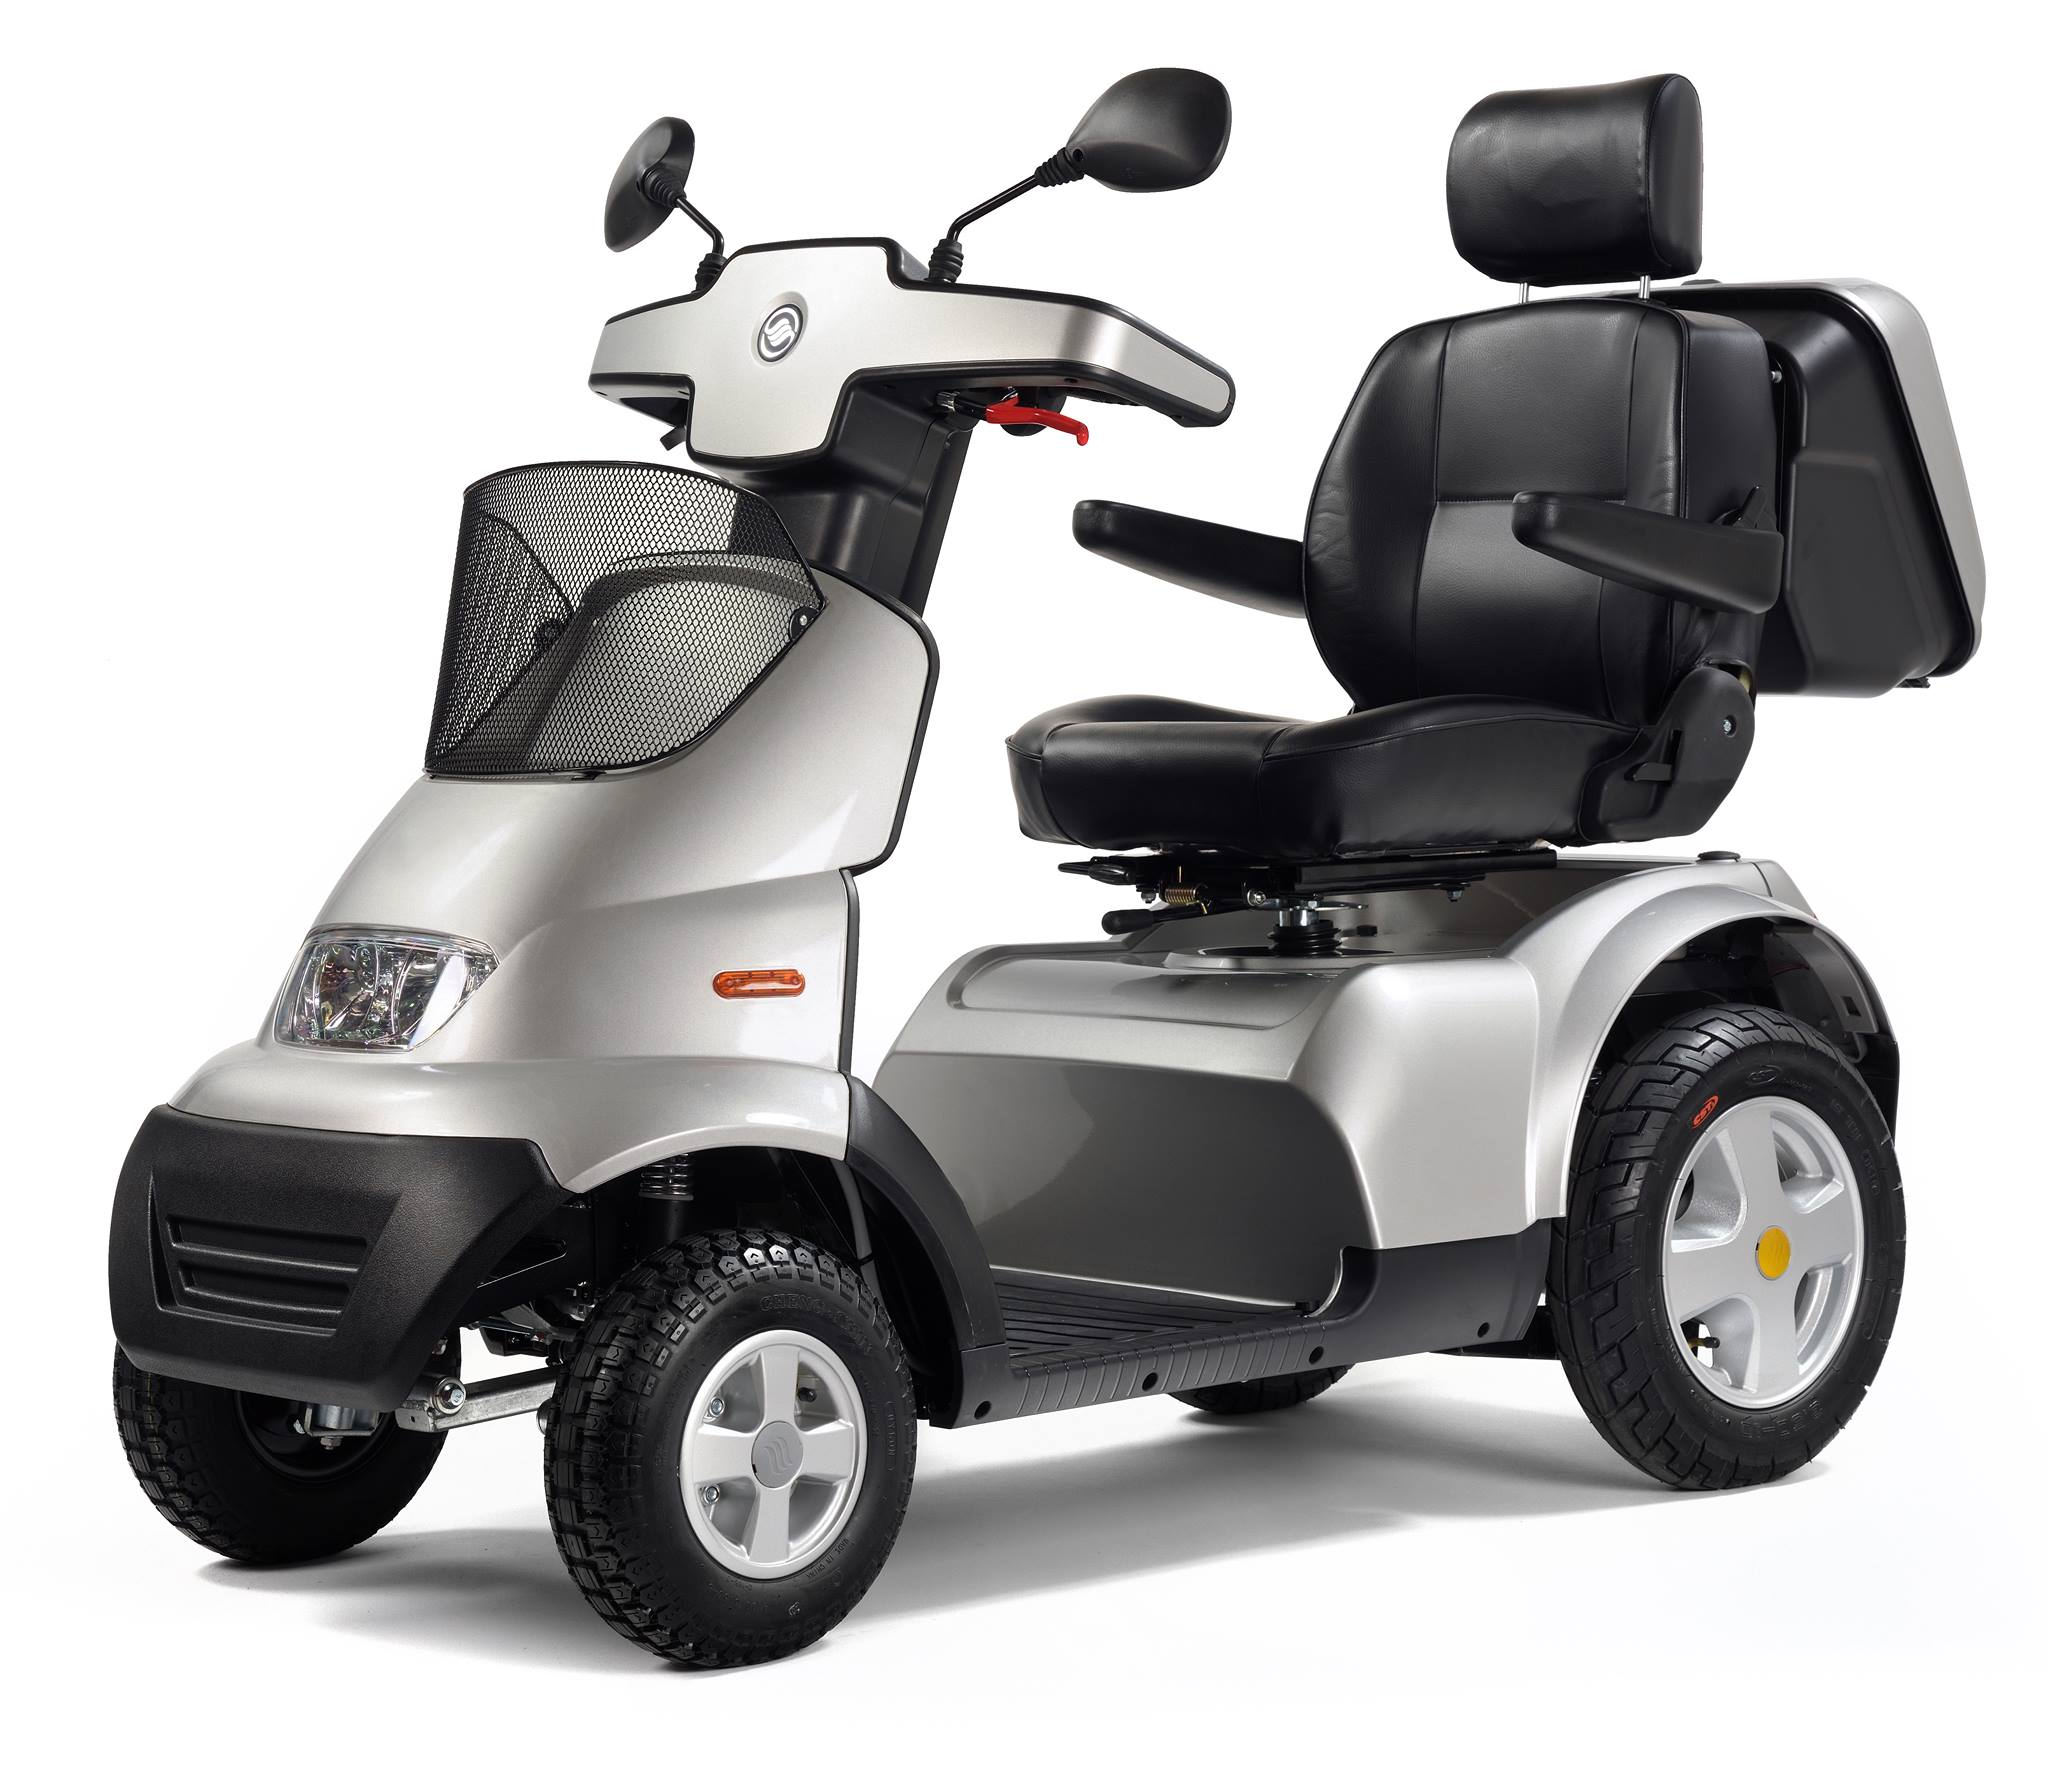 Afikim Breeze S / Afiscooter S (3 and 4 Wheel)